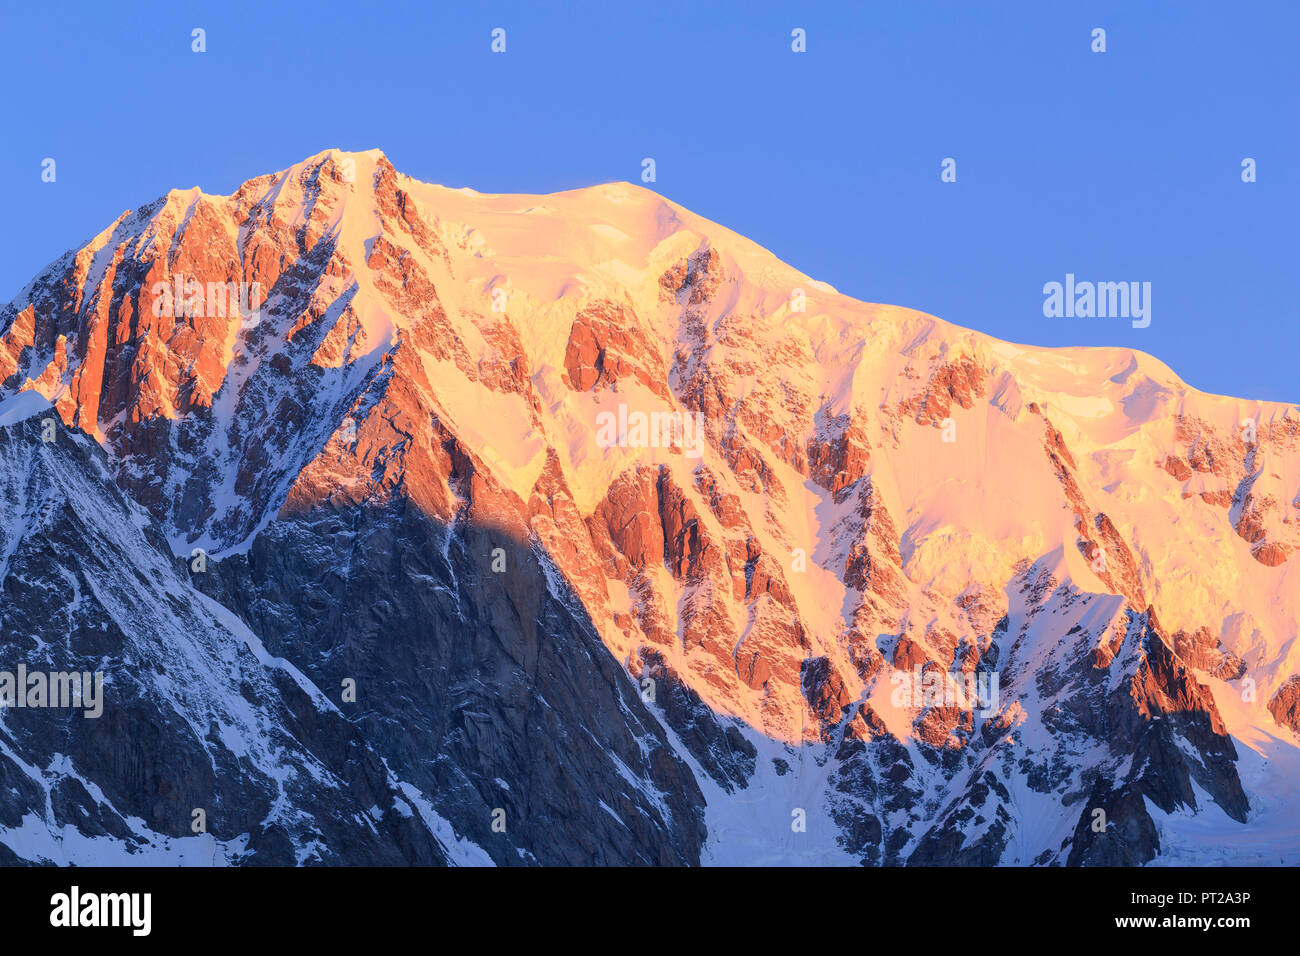 Mont Blanc illuminated by the rising sun, Ferret Valley, Courmayeur, Aosta Valley, Italy, Europe - Stock Image